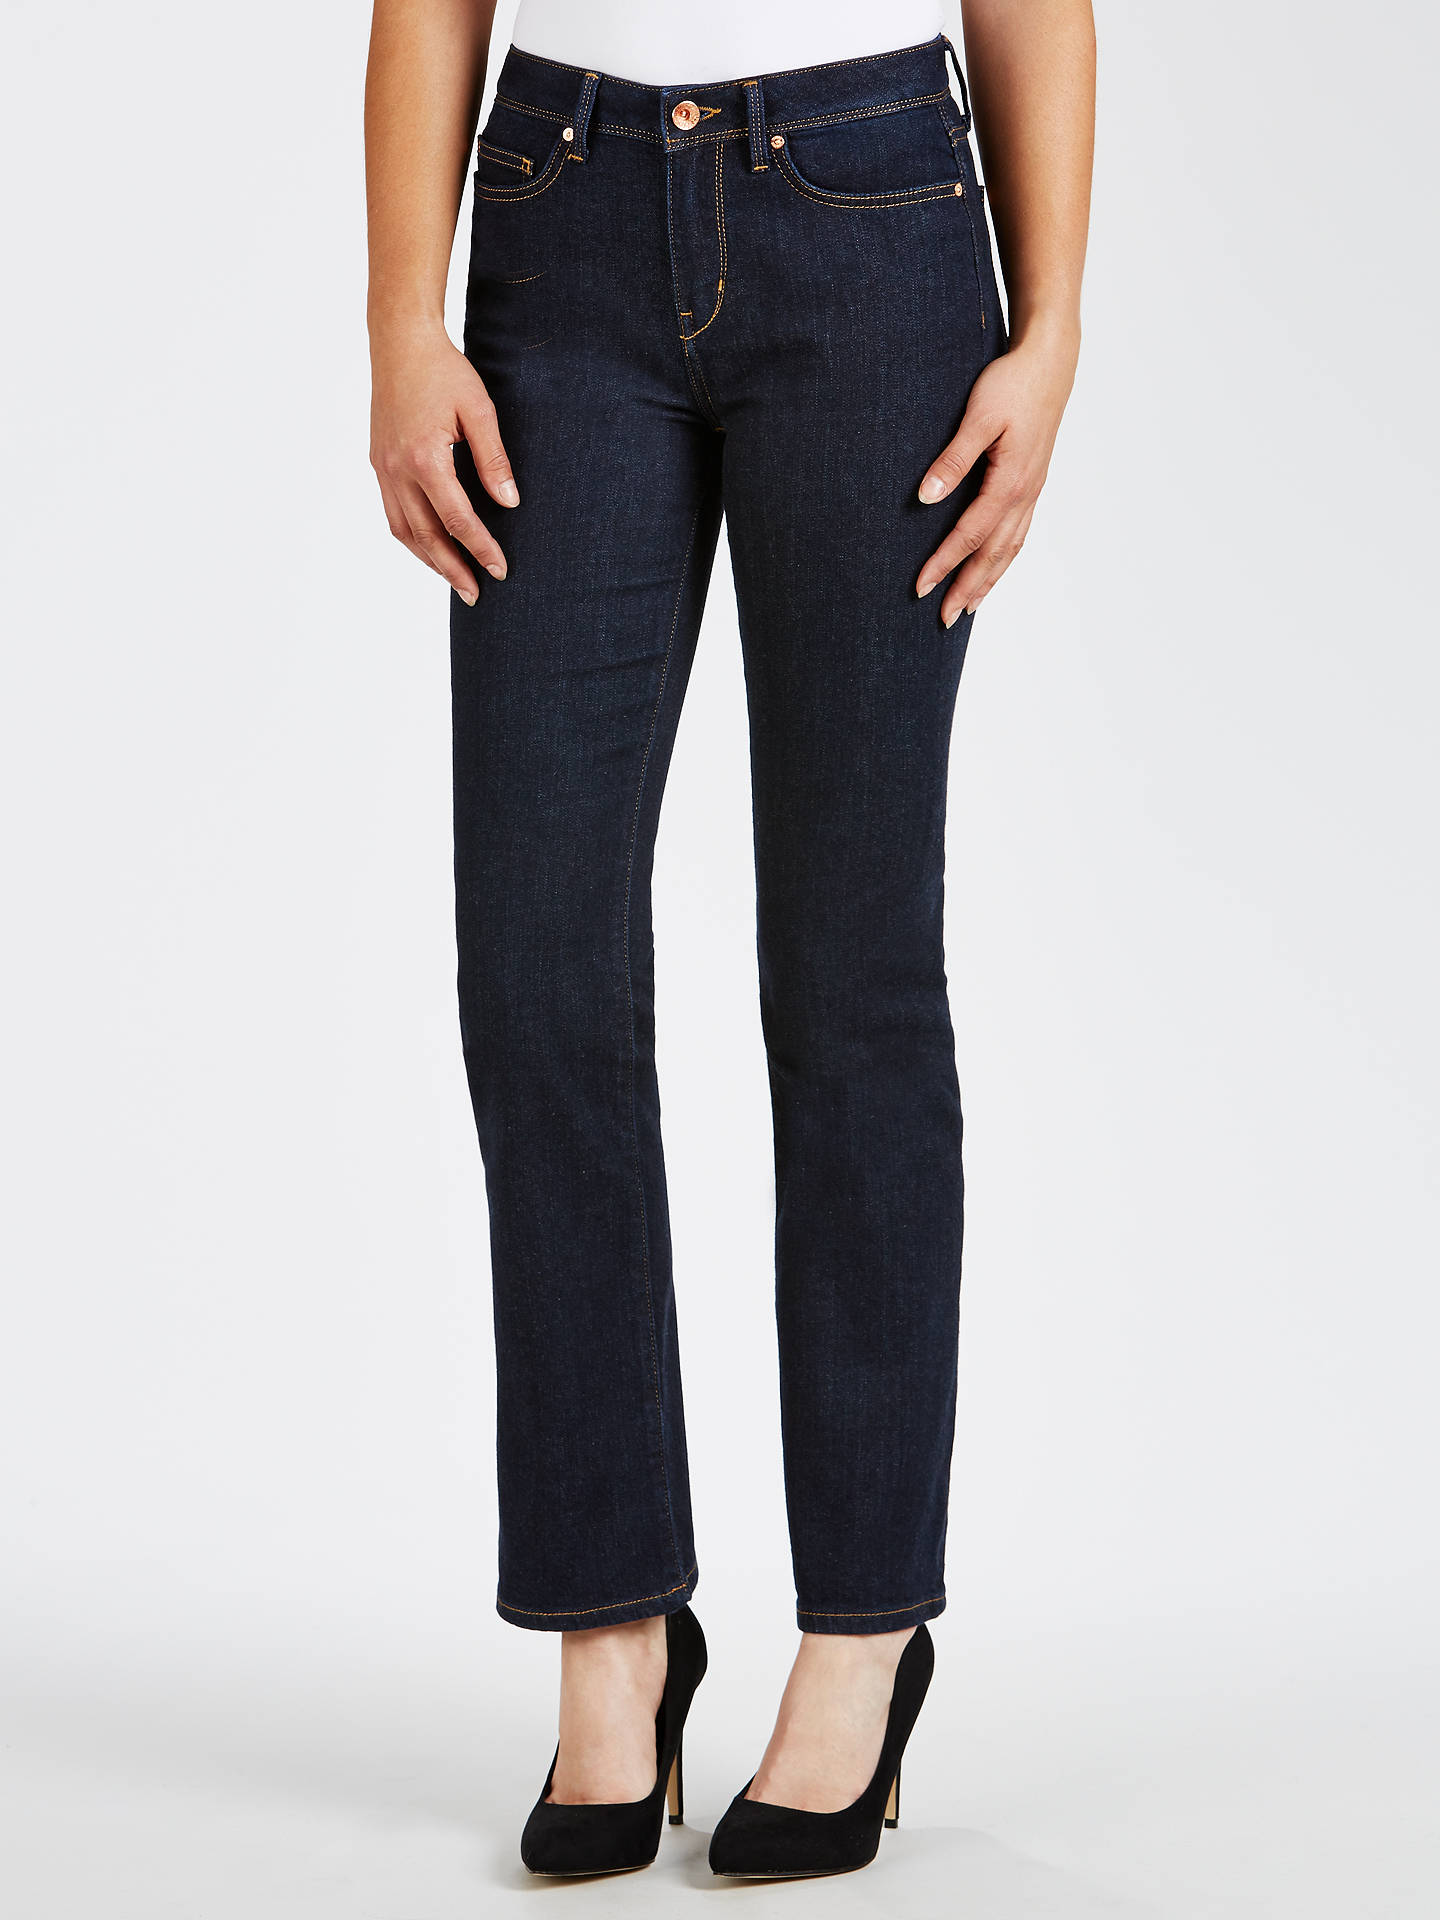 65336eb4 Buy Tommy Hilfiger Paris Slim Jeans, Chrissy, W29/L32 Online at johnlewis.